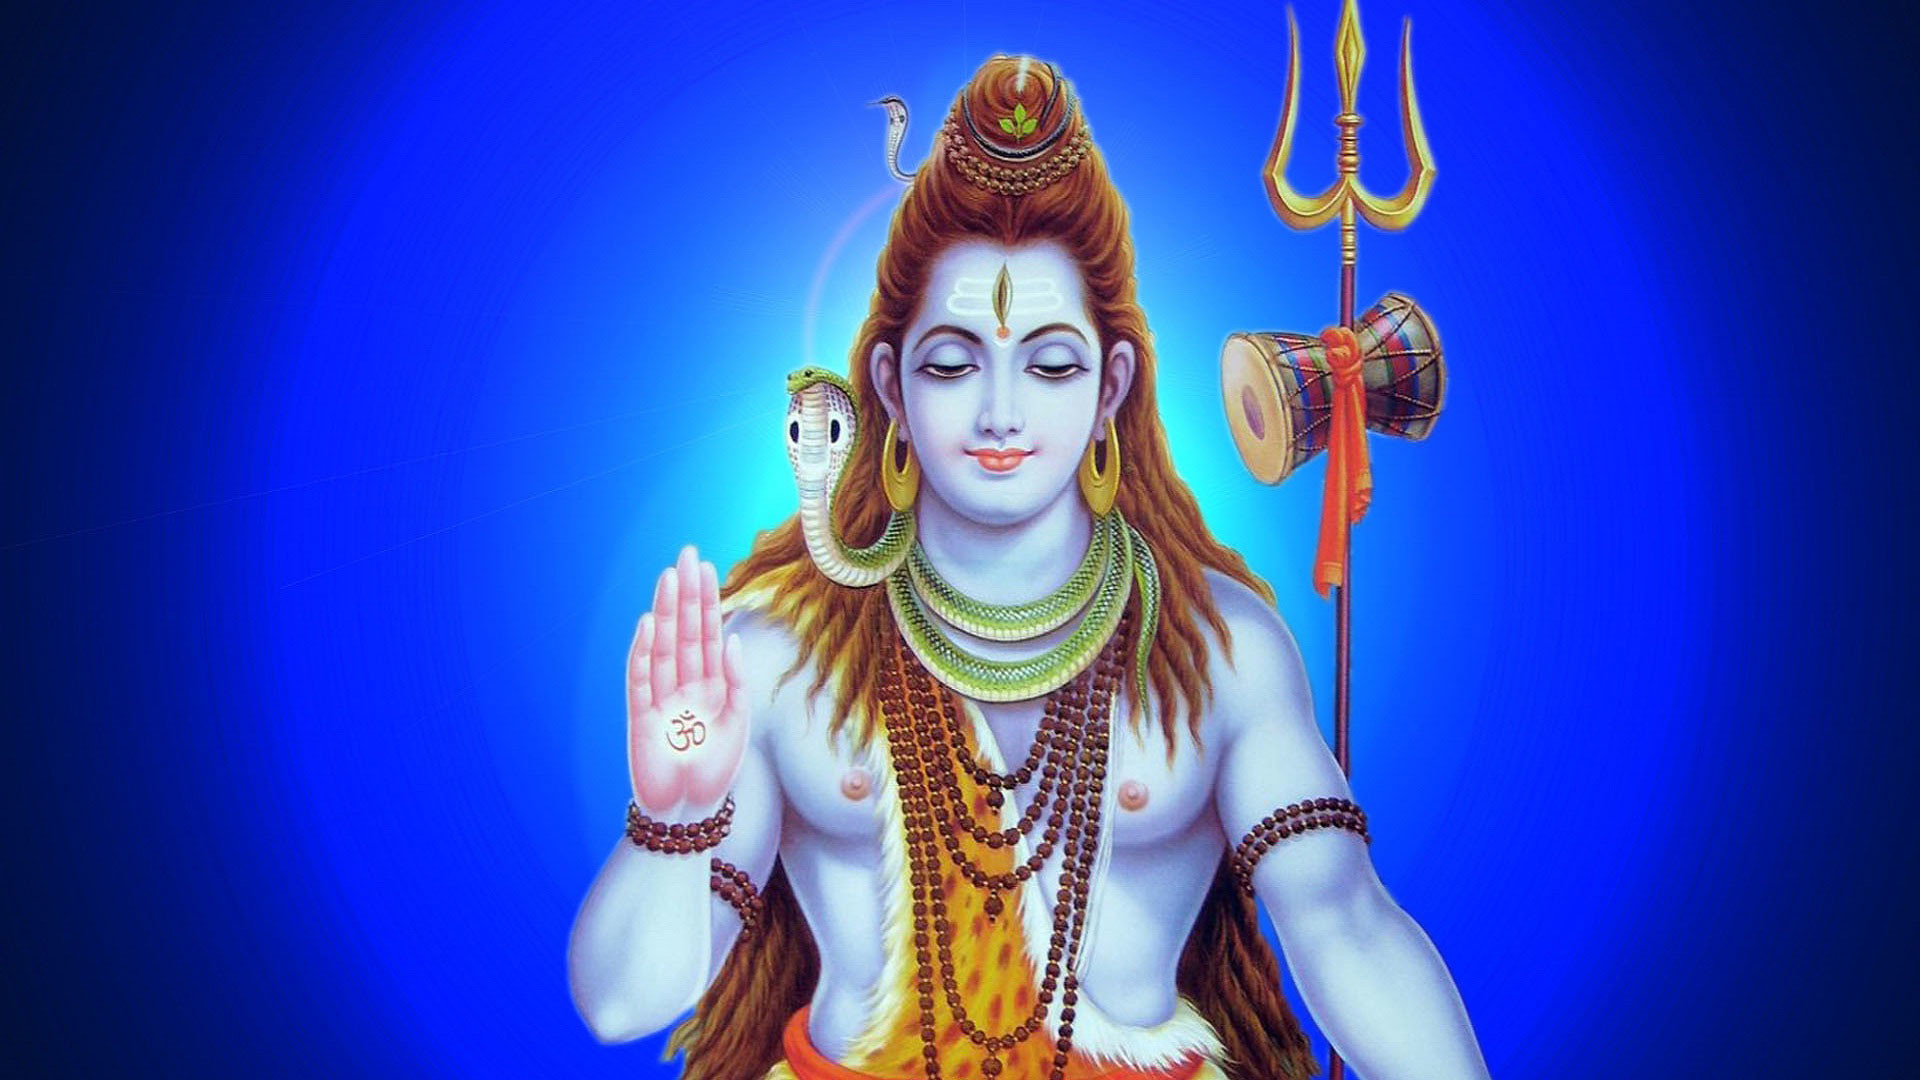 hd pics photos gods lord shiv new desktop background wallpaper